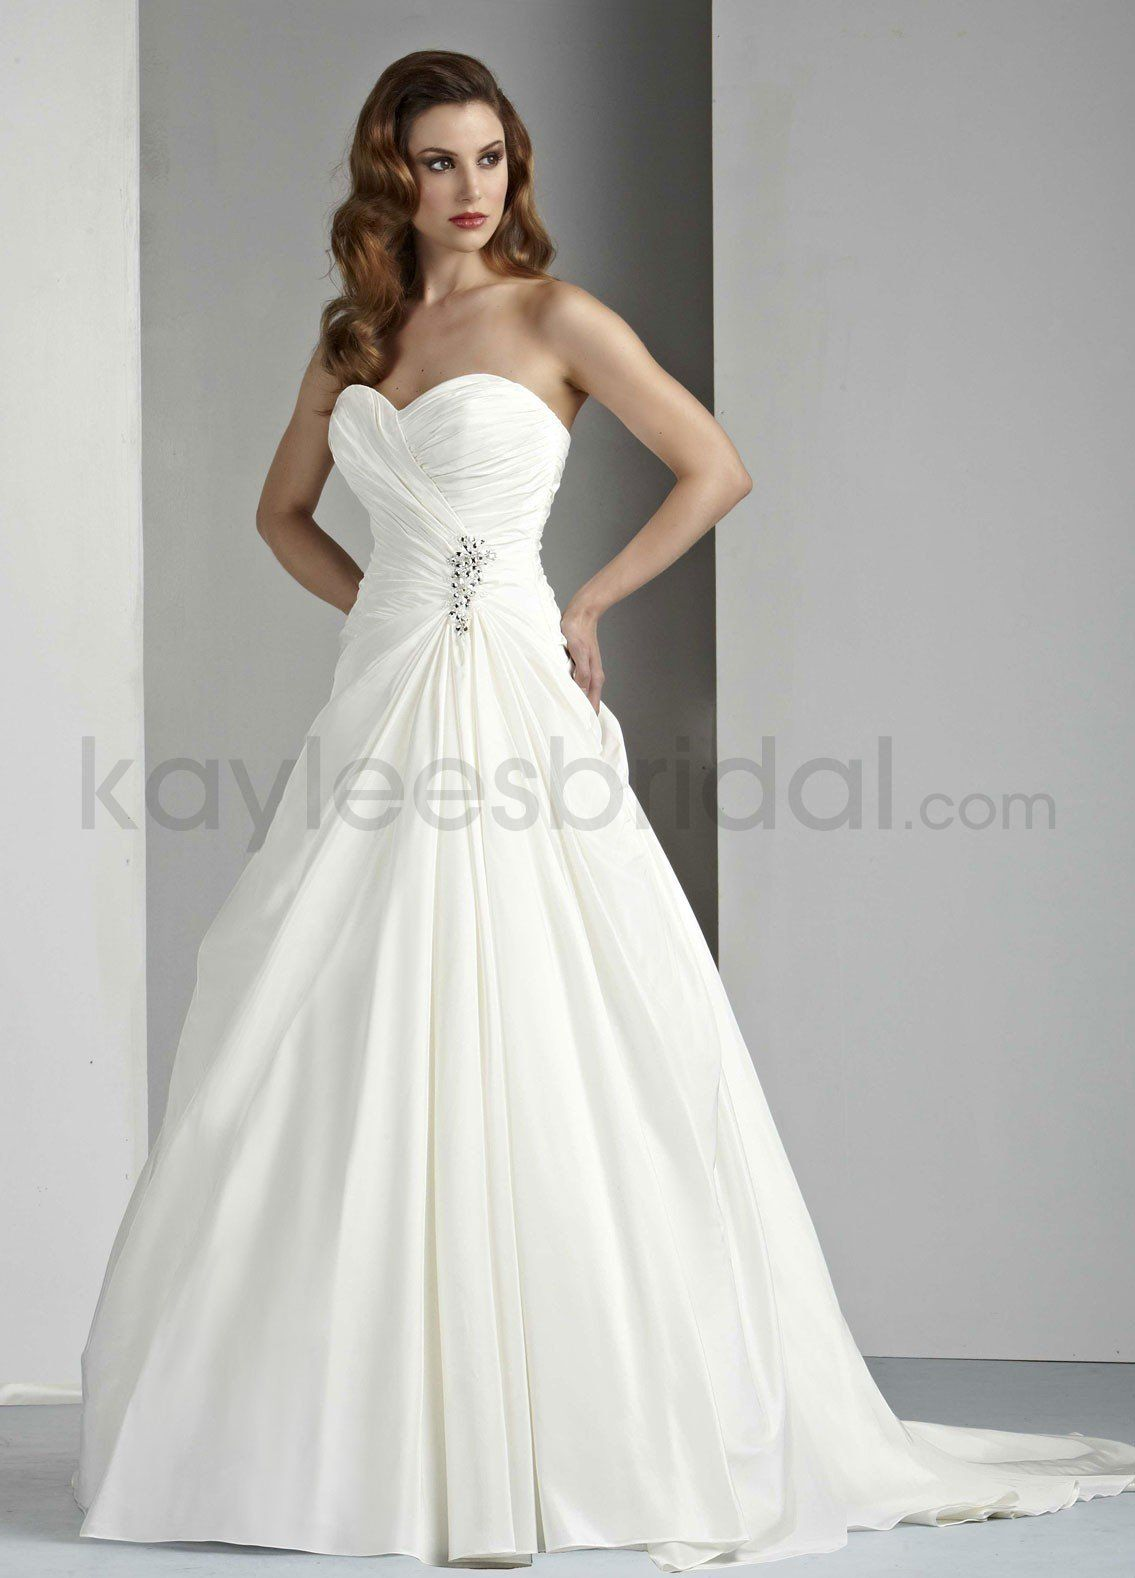 Kaylees Bridal Taffeta A Line Strapless Sweetheart Neckline Gathered Bodice Wedding Dress